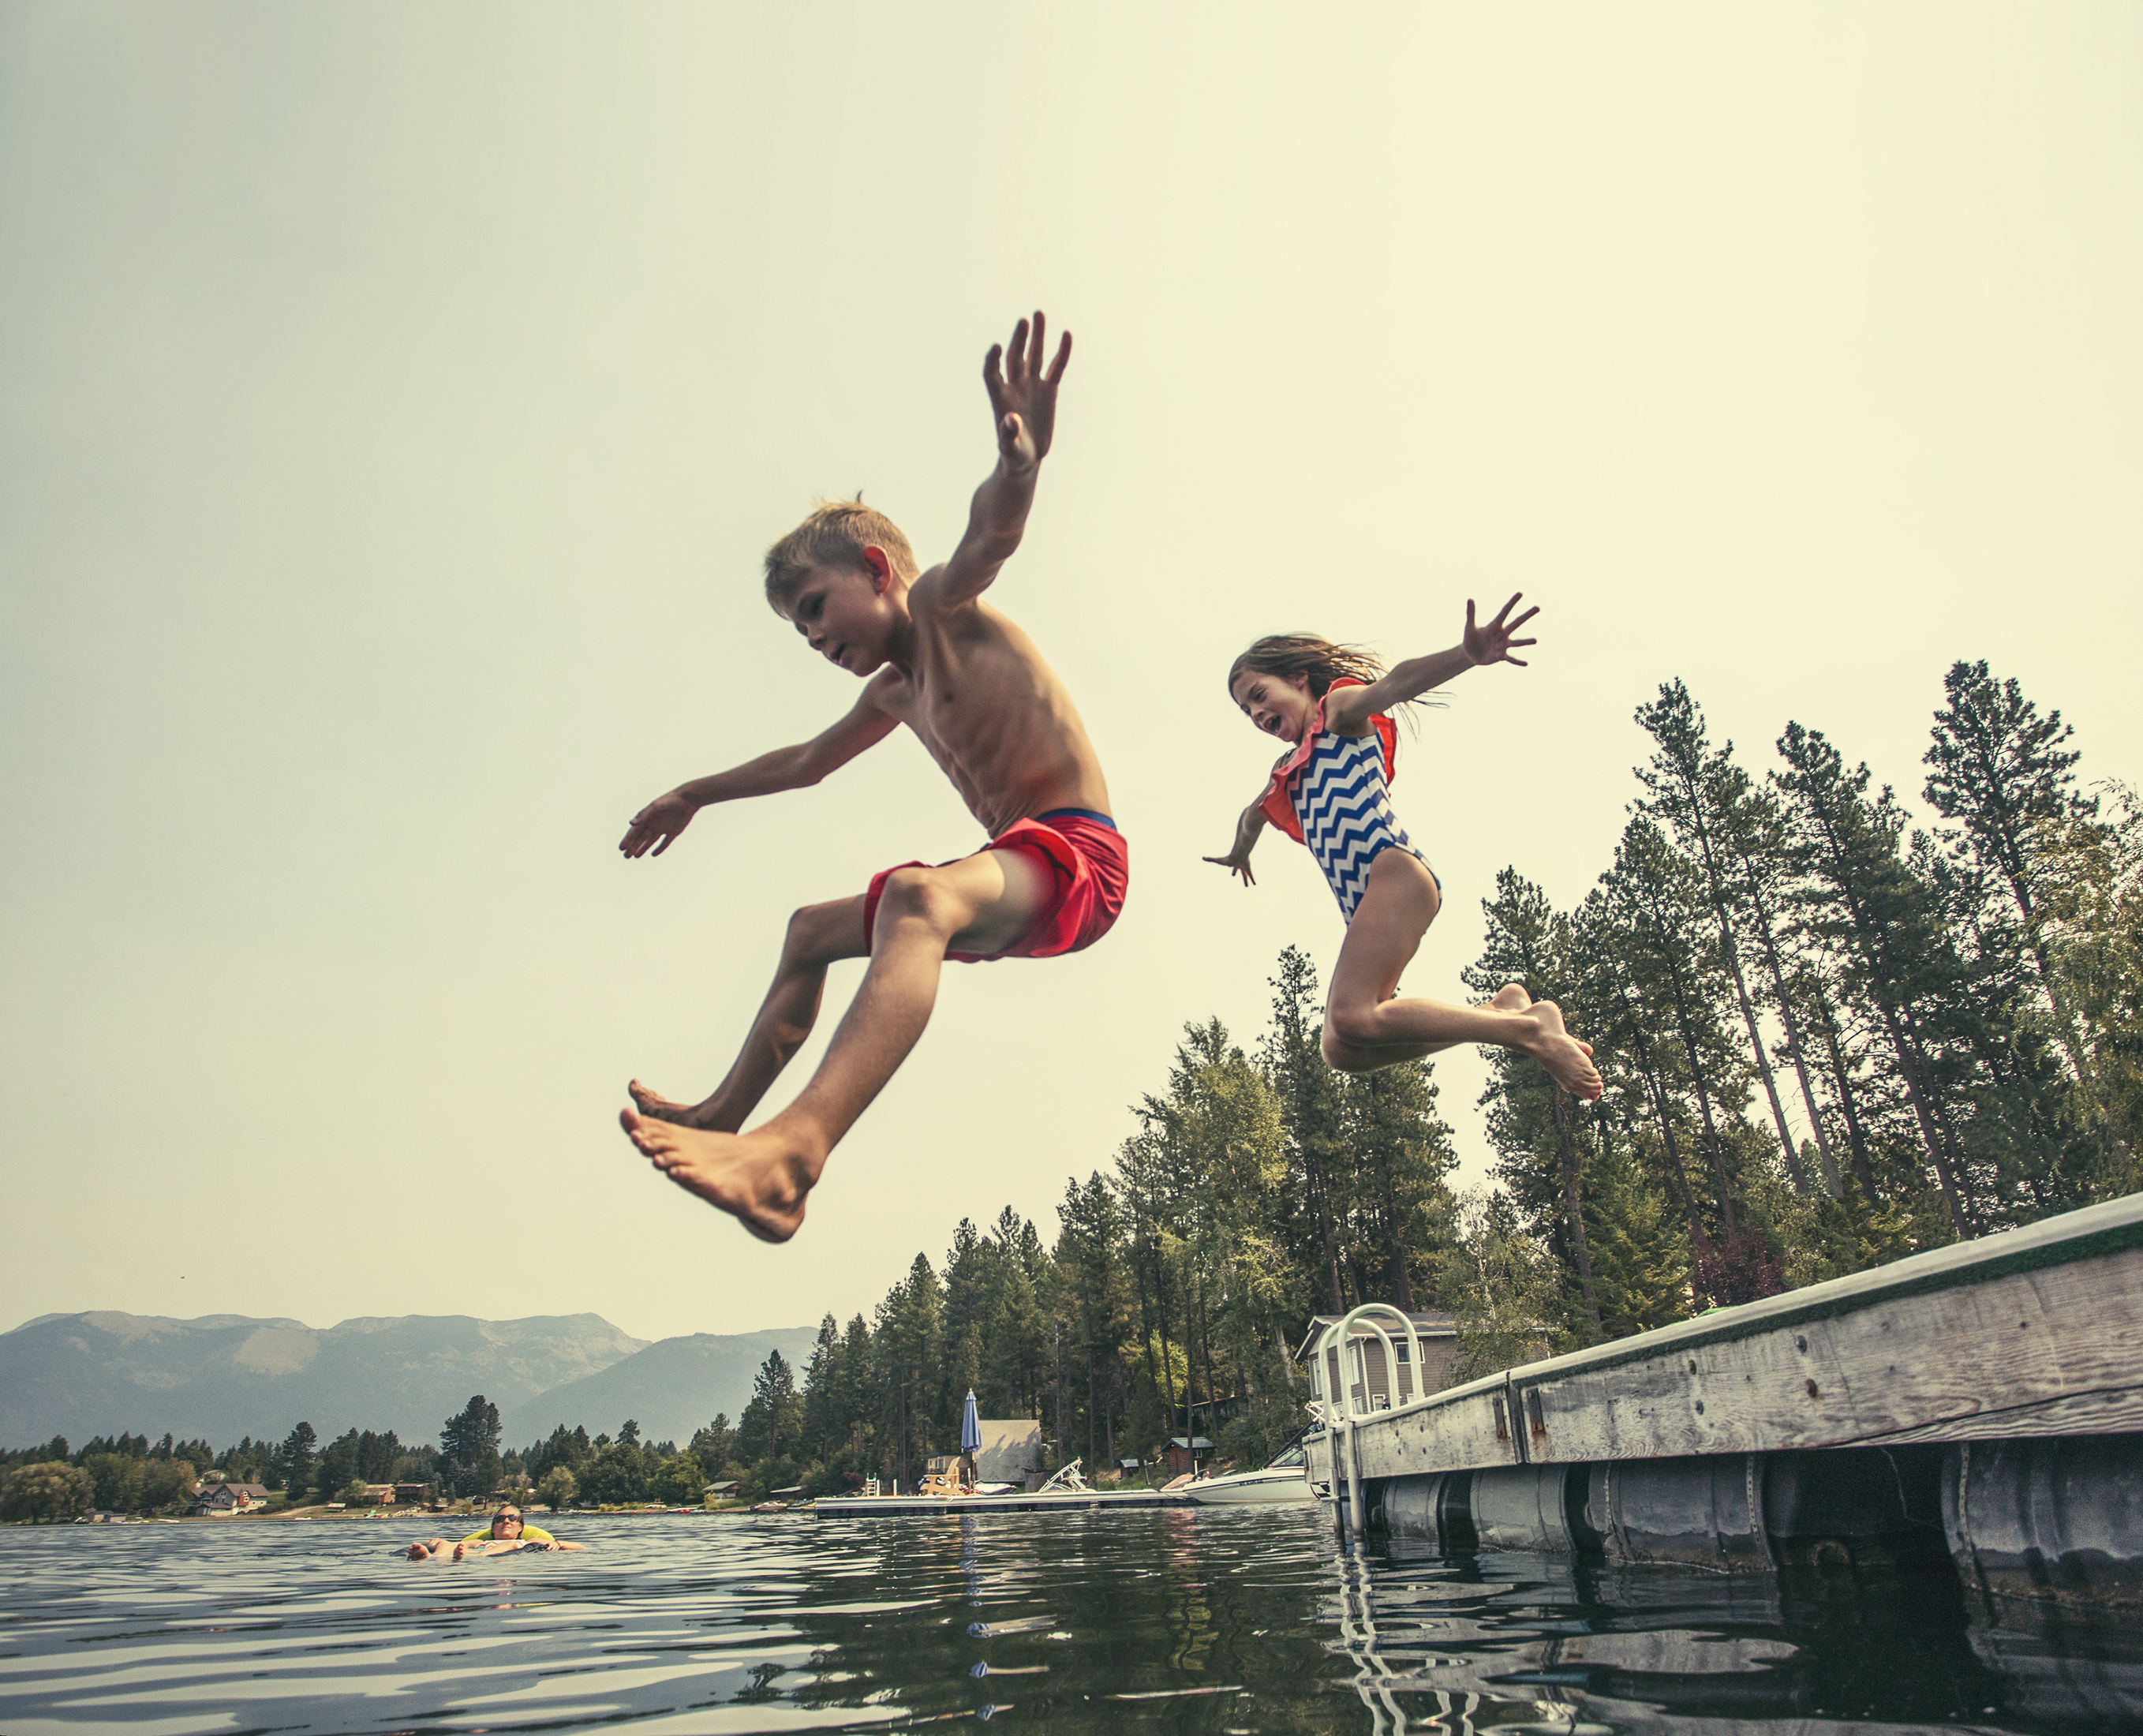 boy and girl jump into lake from dock